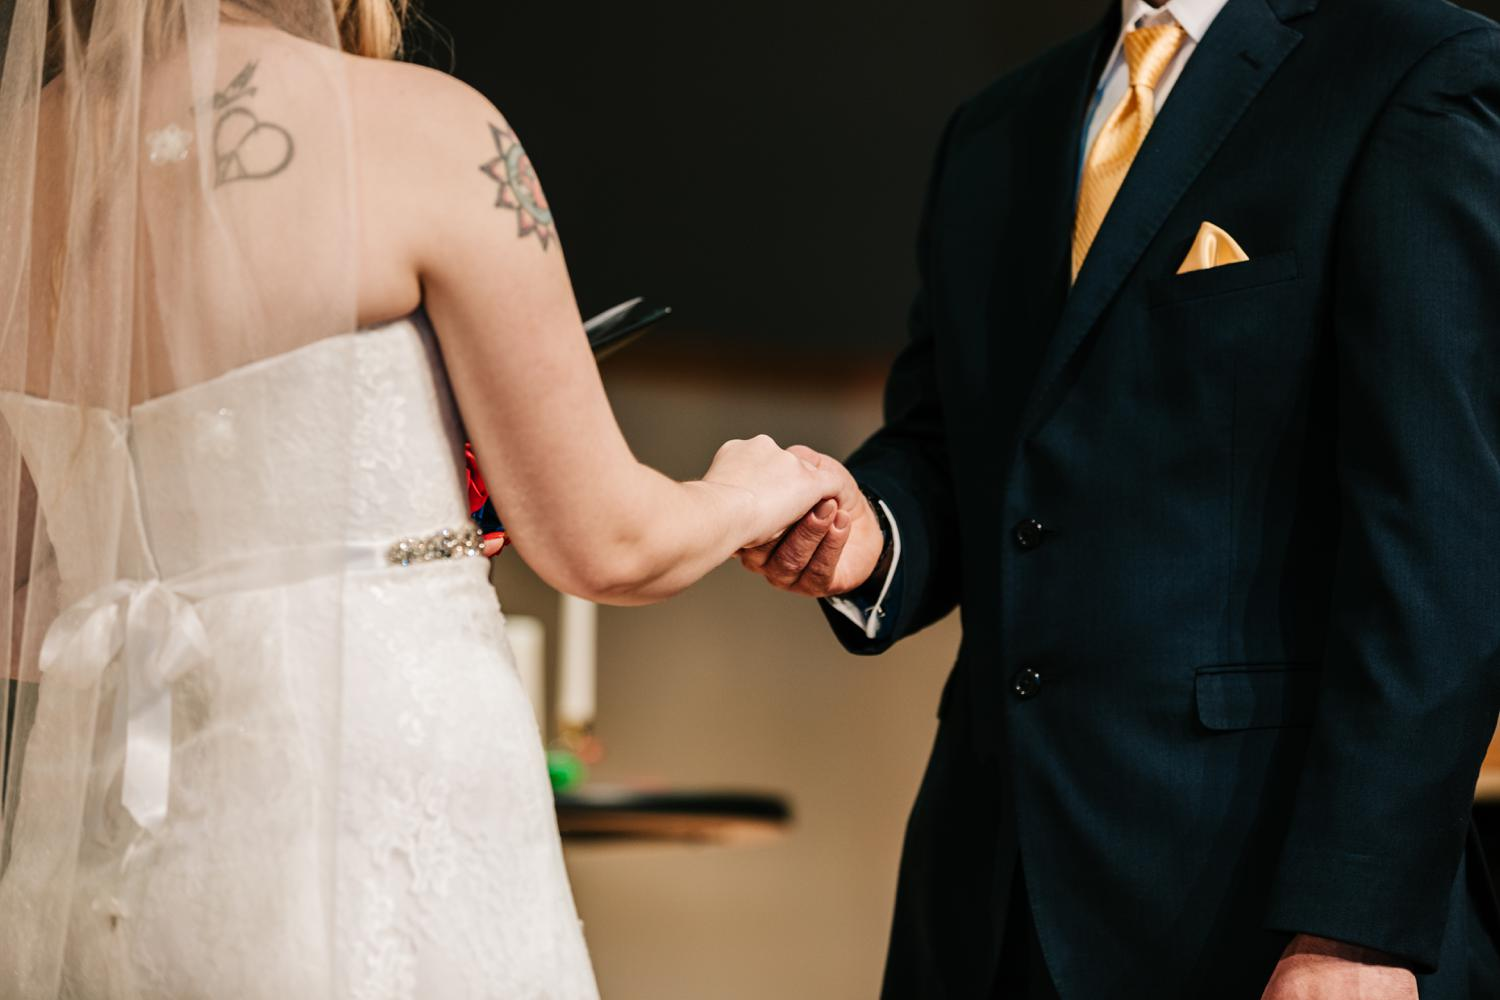 Tattooed bride and groom holding hands